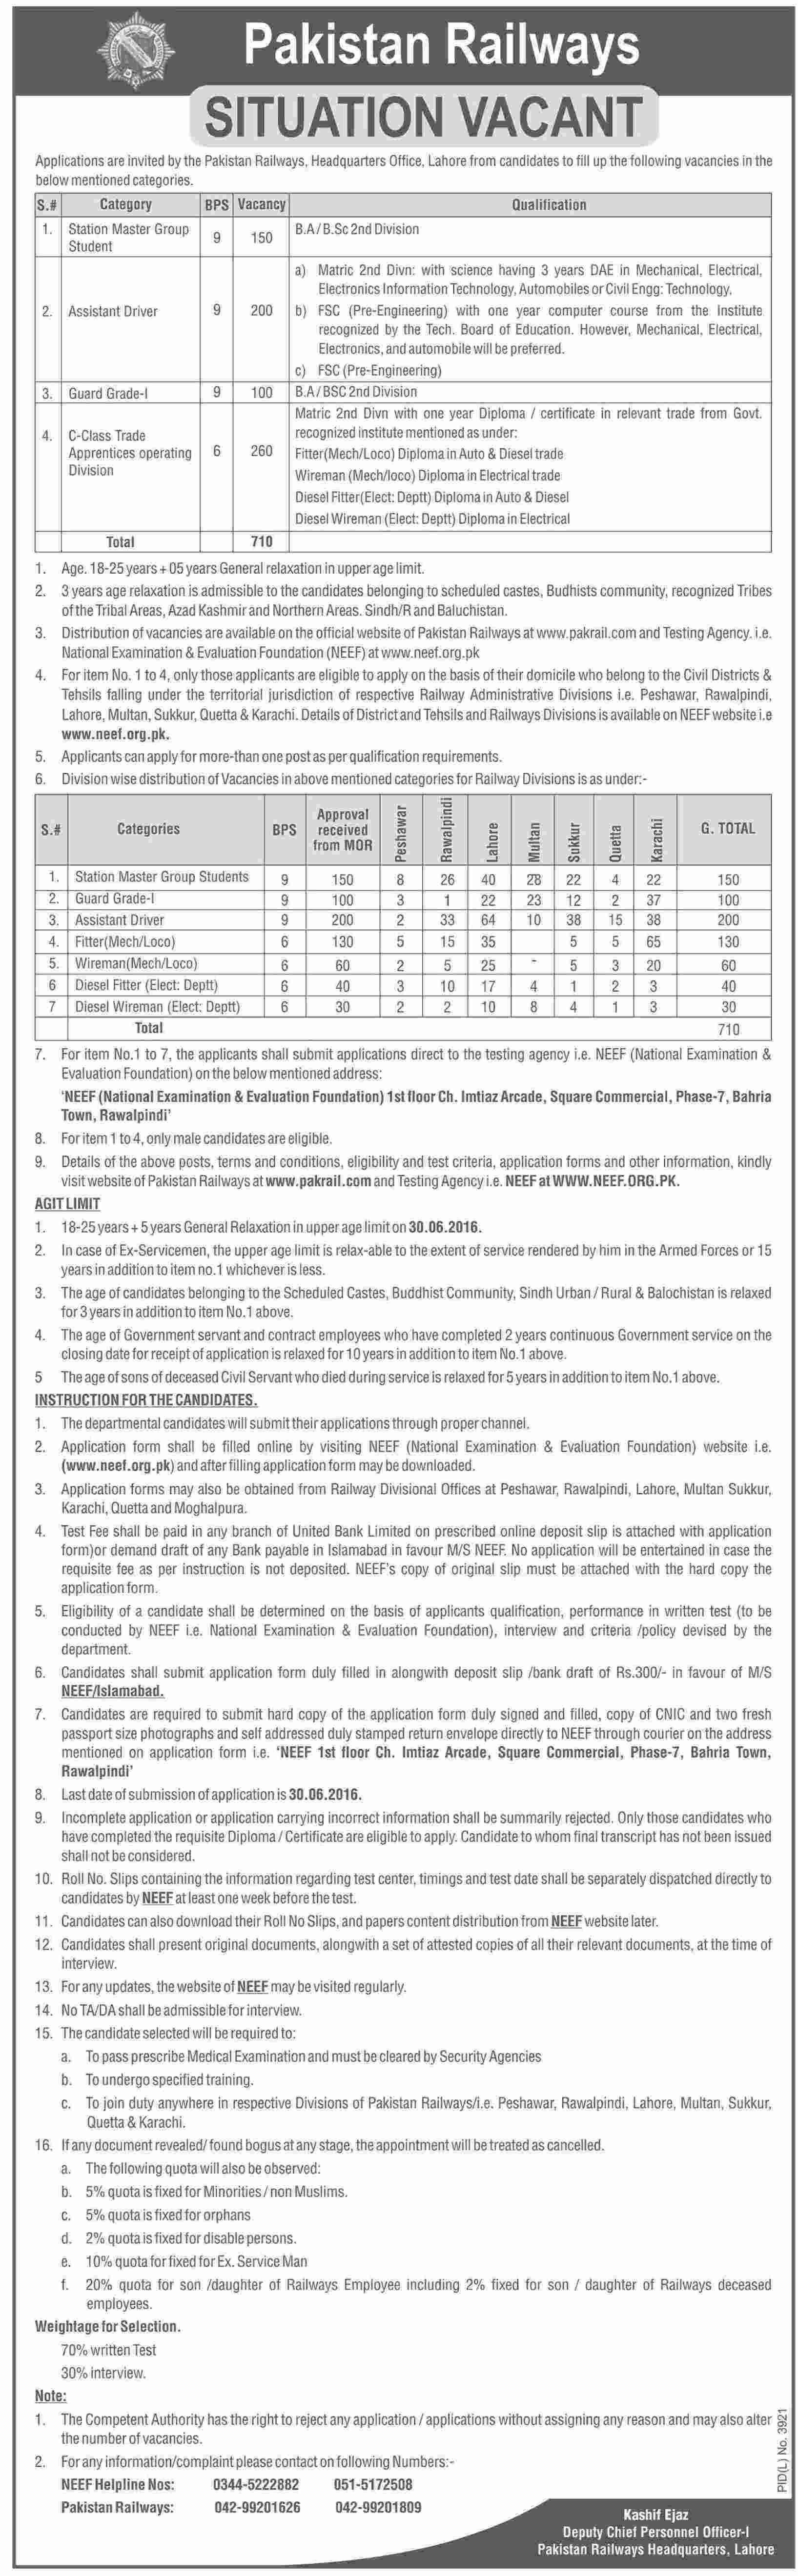 Pakistan Railways Career Opportunities